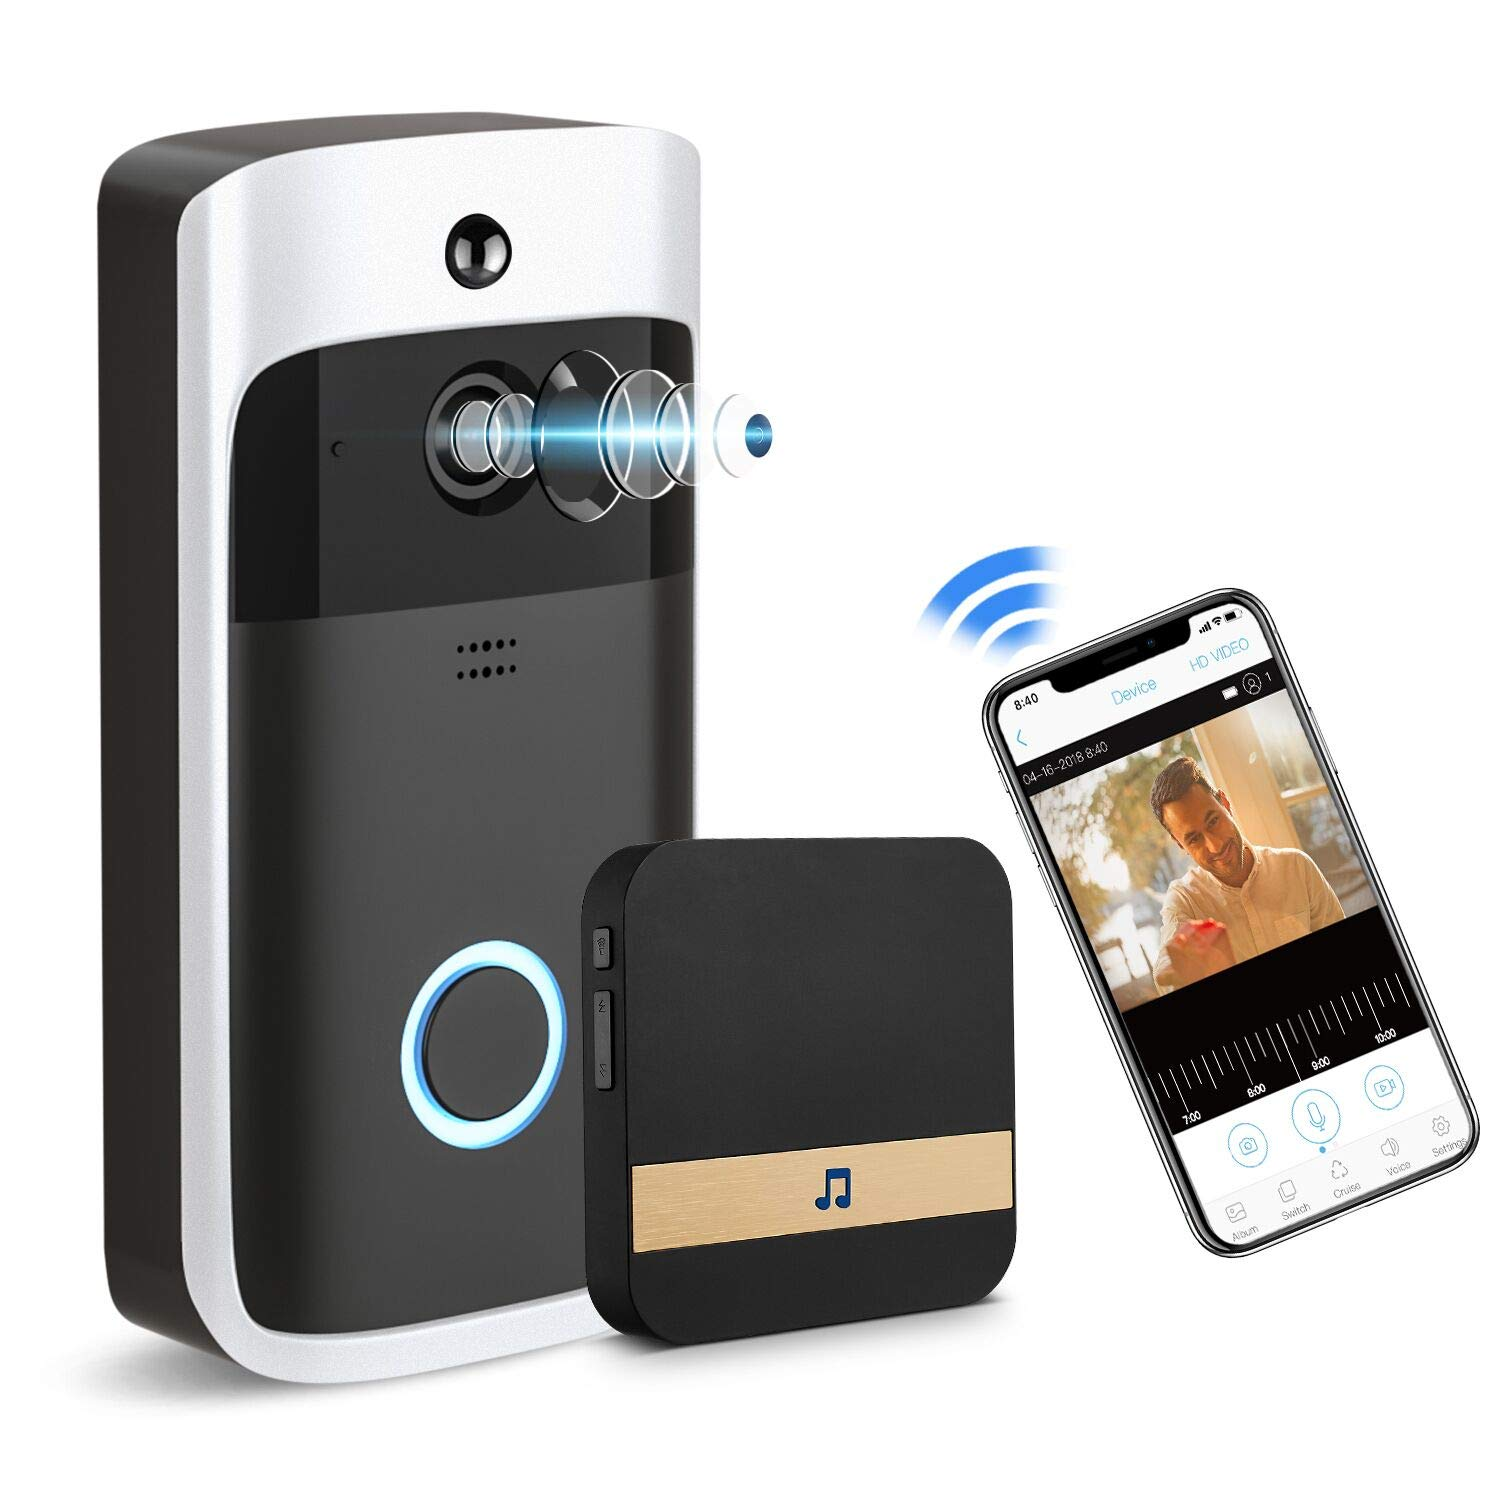 GJT Smart Video Doorbell Wireless Home WIFI Security Camera With Indoor Chime, 8G SD Card, Free Cloud Service, 2 Batteries, 2-Way Talk, Night Vision, PIR Motion Detection, APP Control for IOS Android by GJT (Image #1)